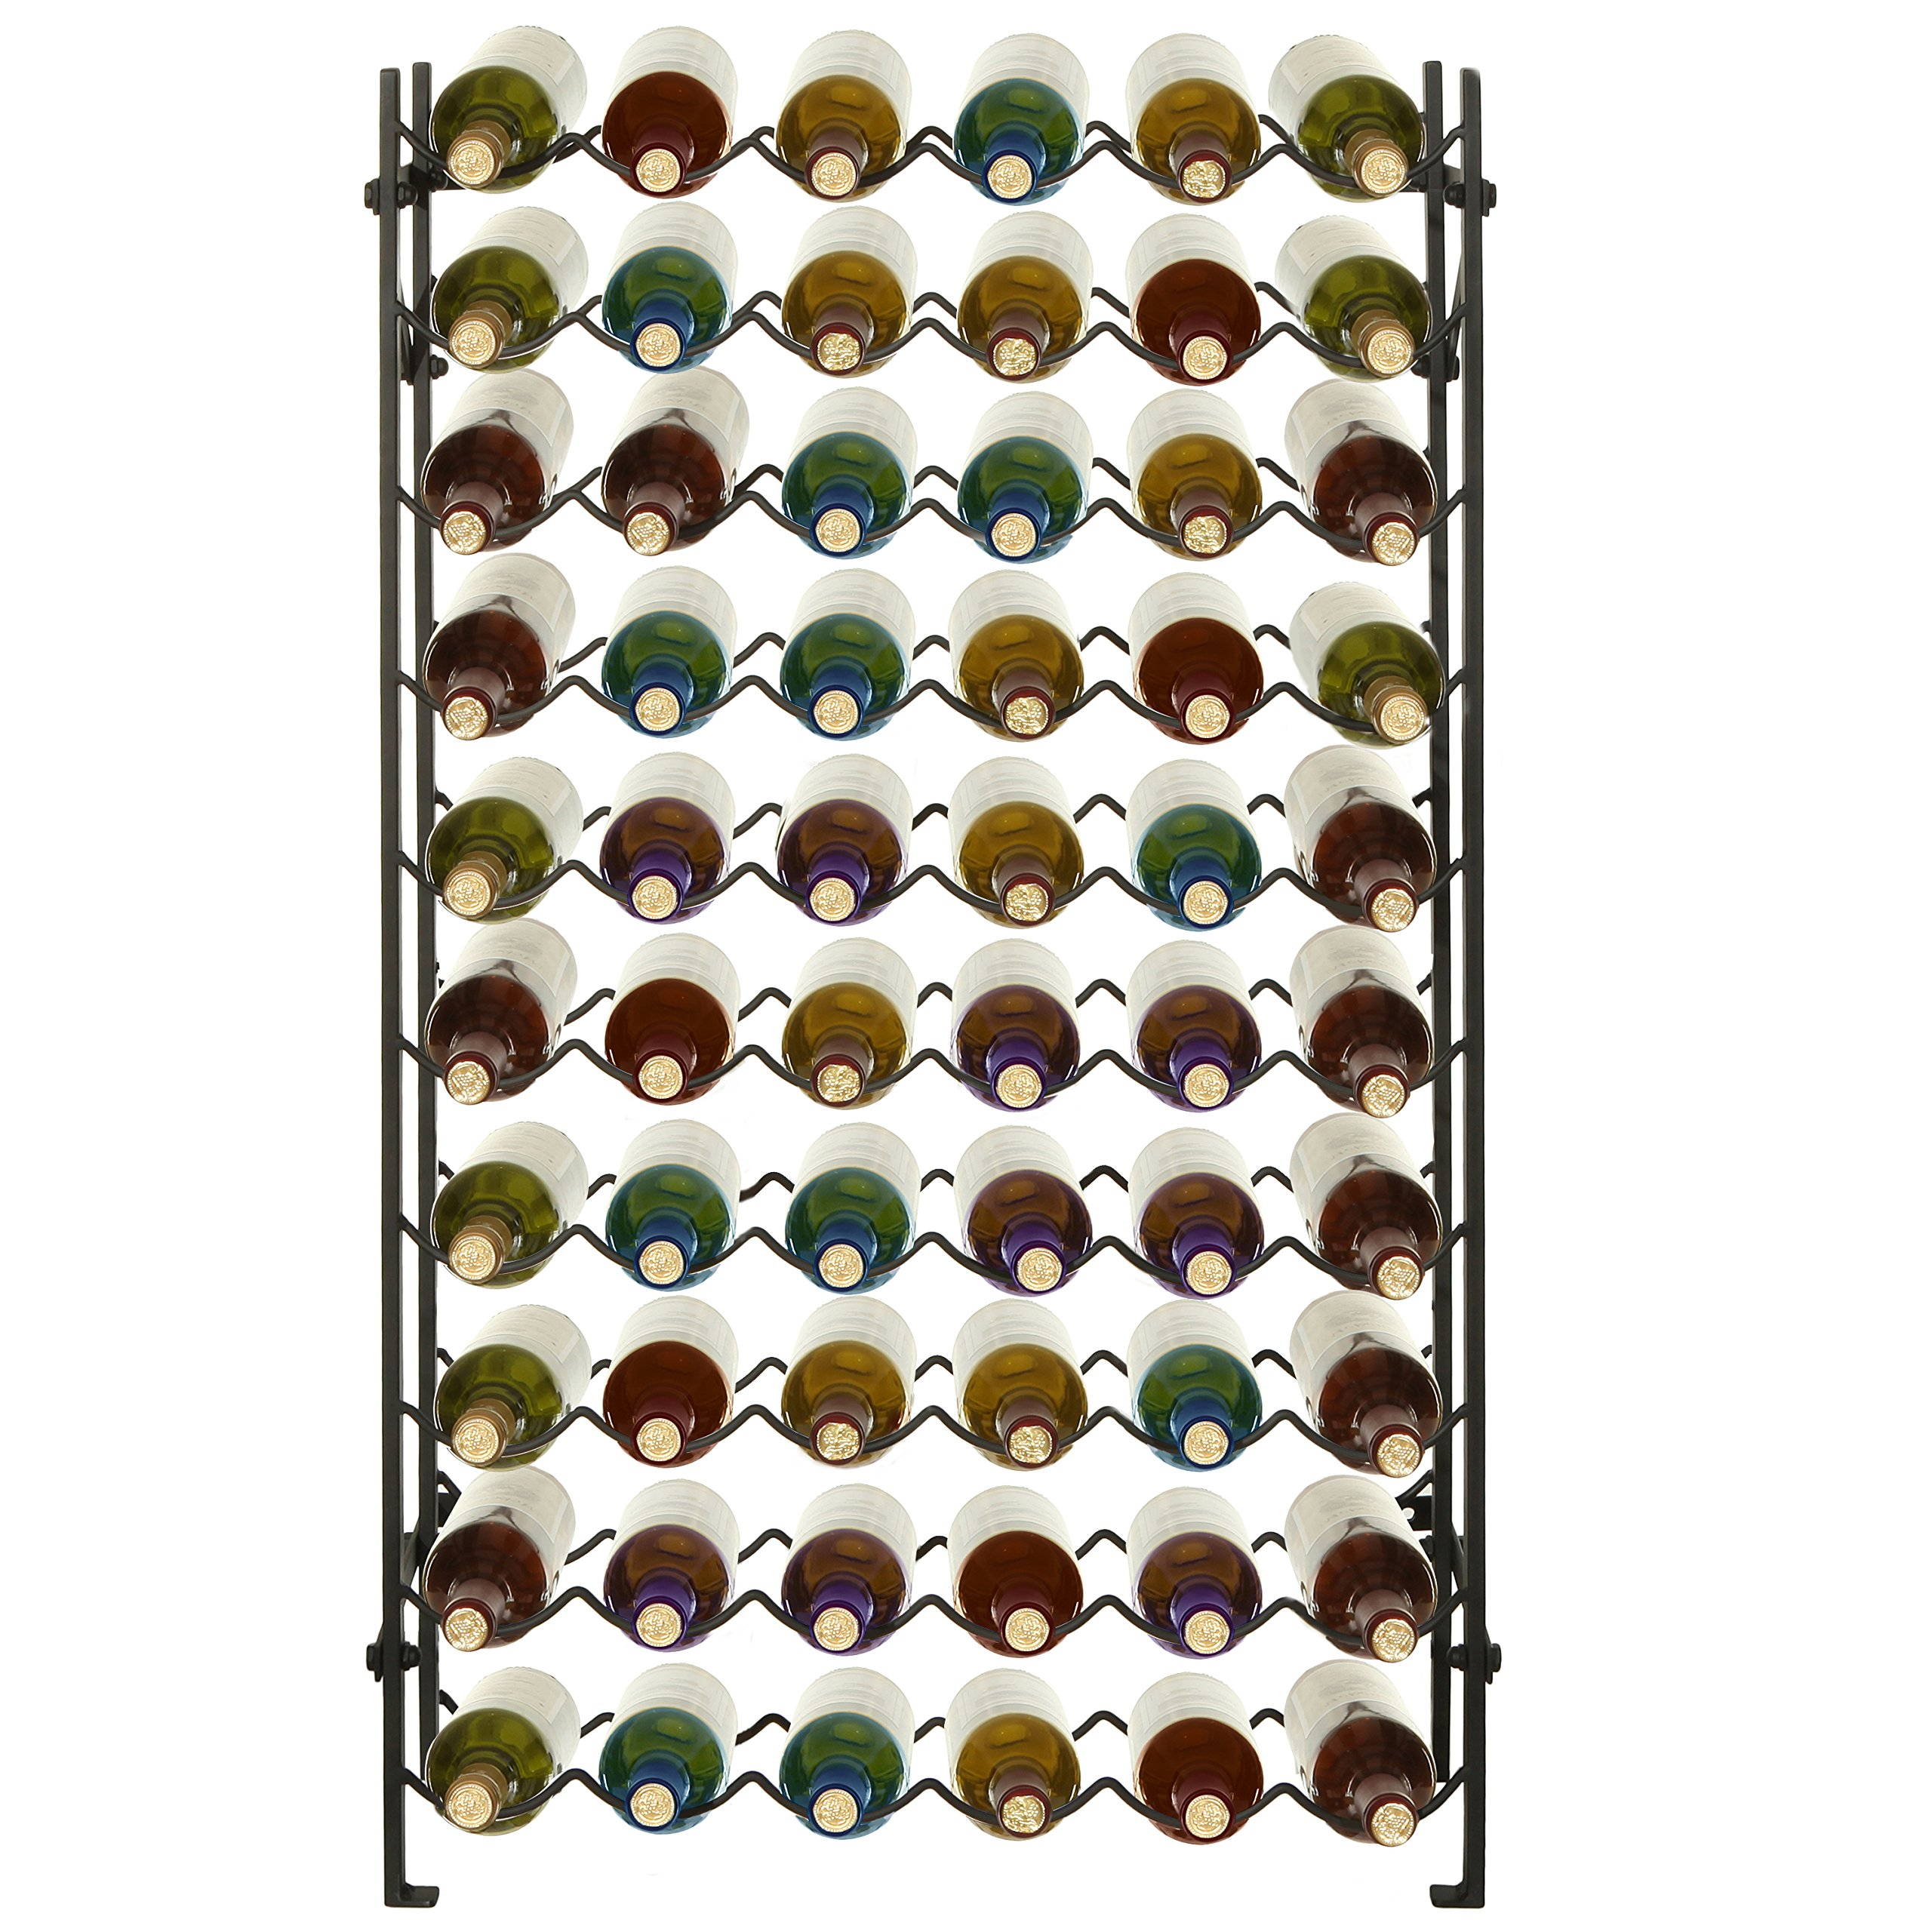 Modern Black Metal 60 Bottle Wine Cellar Organizer Rack/Wall Mounted Wine Collection Display Stand by MyGift (Image #2)